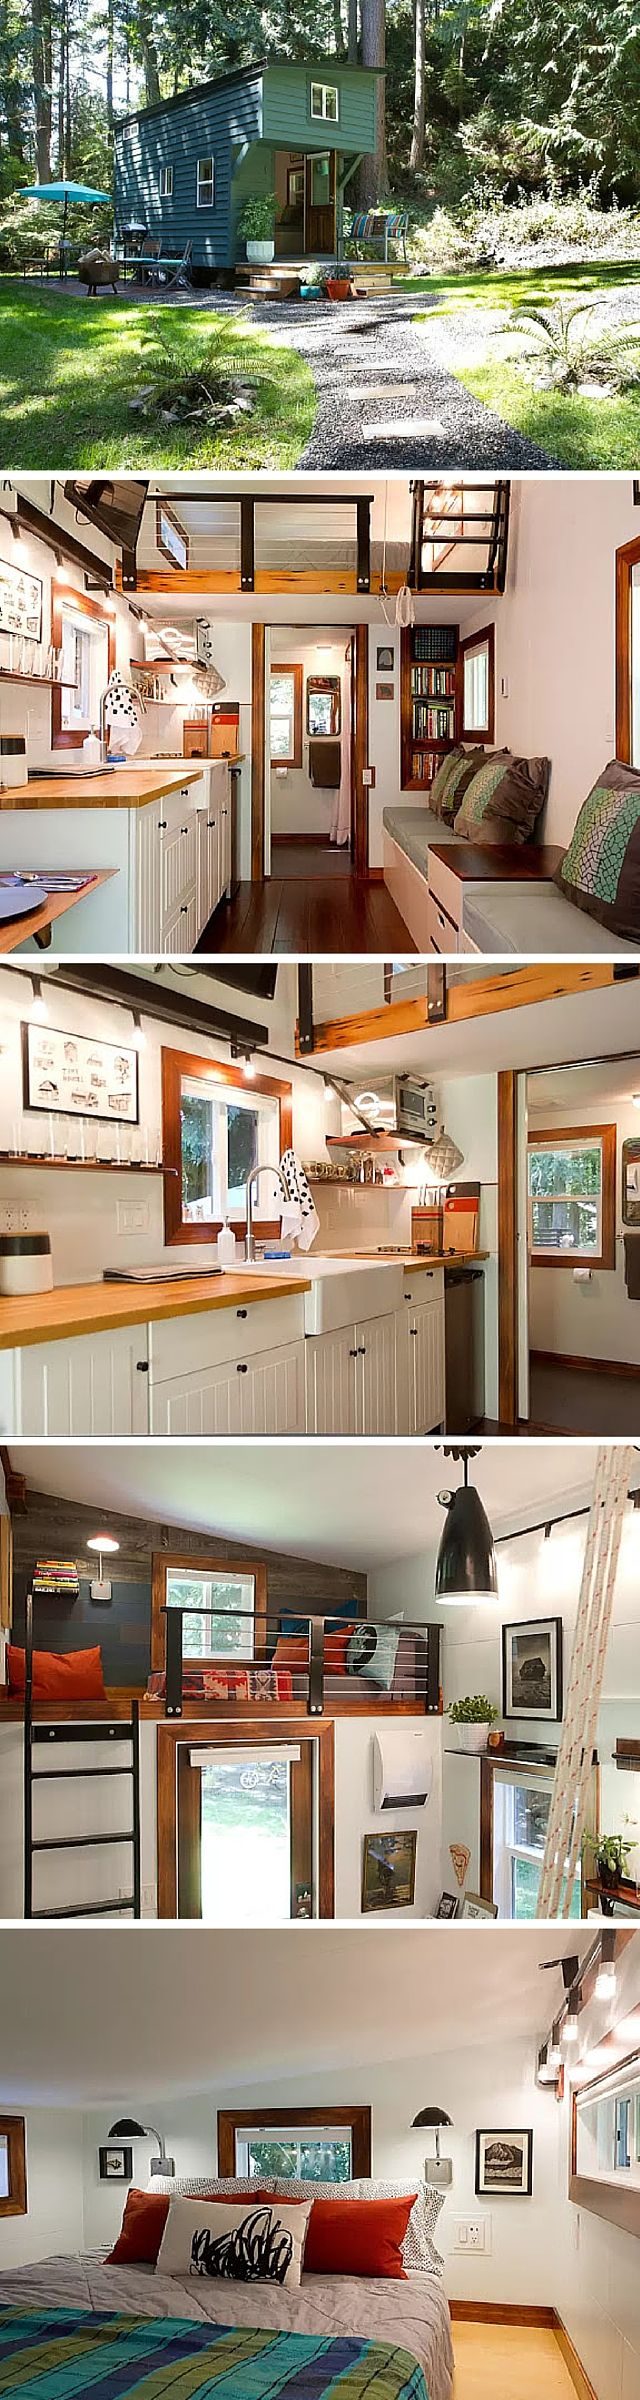 The Maker's tiny house. A retreat on Guemes Island in Washington.